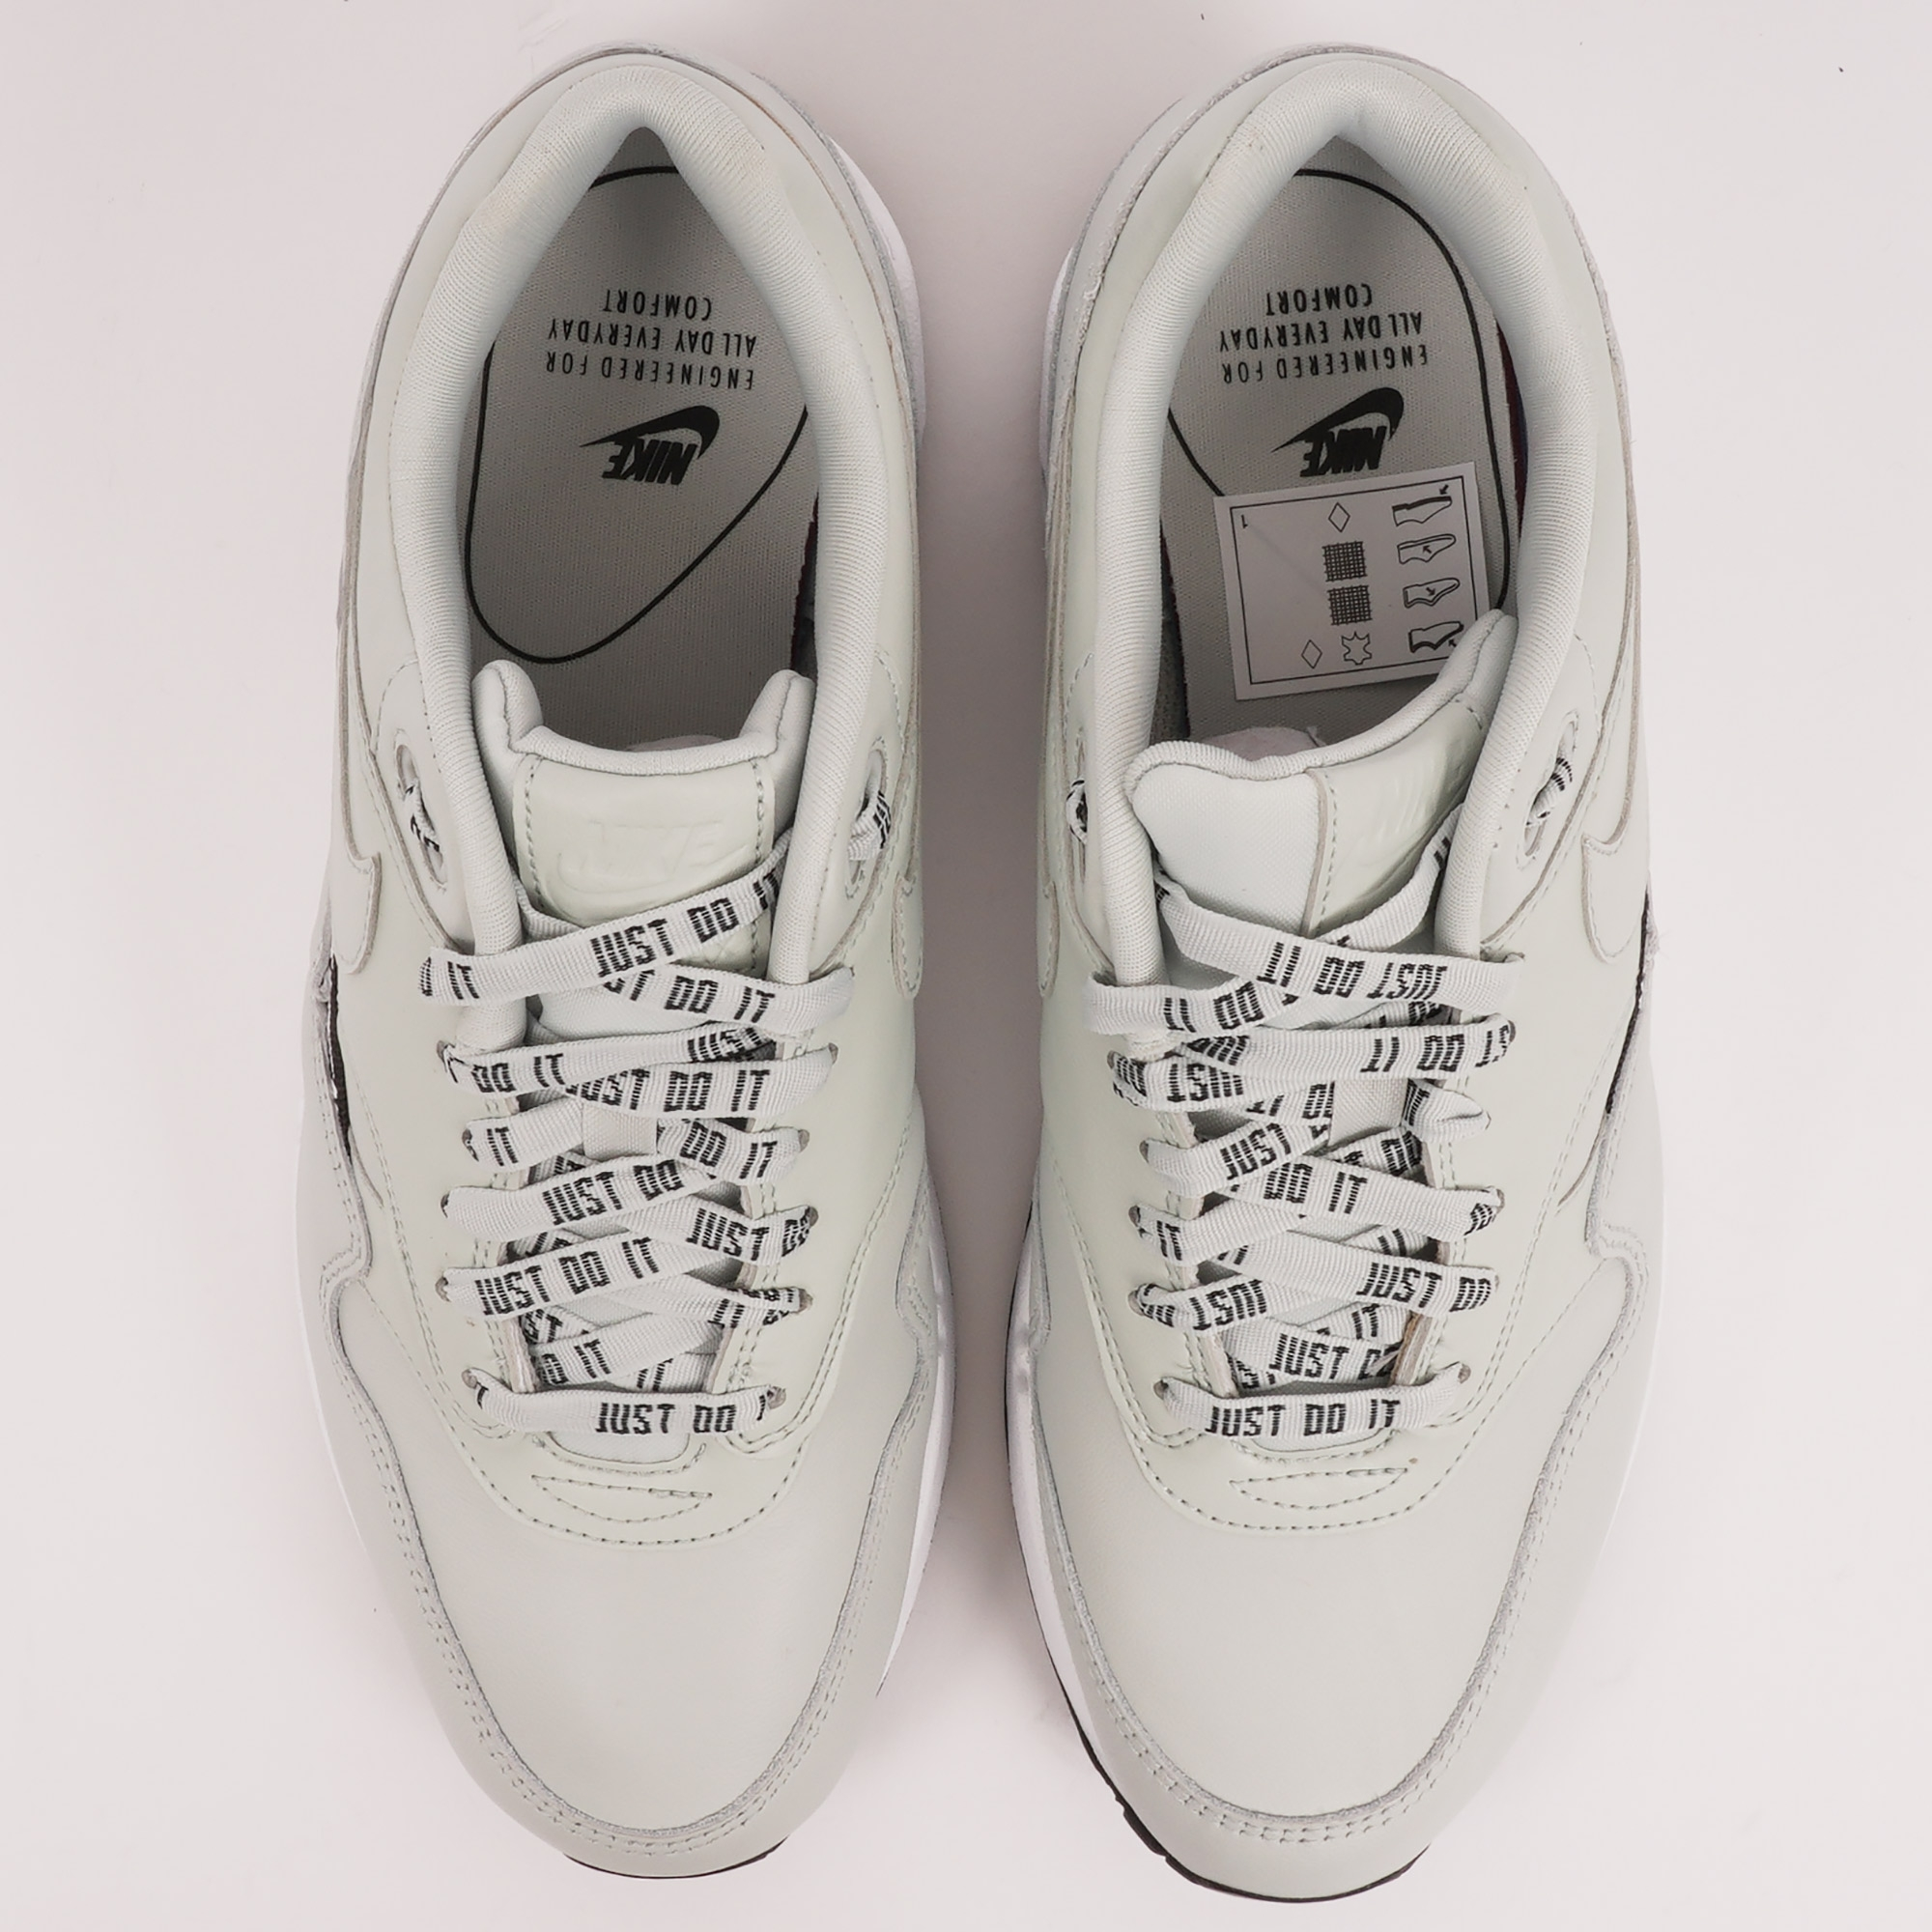 54ad2fd4b77 Nike (Silver) W Air Max 1 SE Overbranded 881101-004